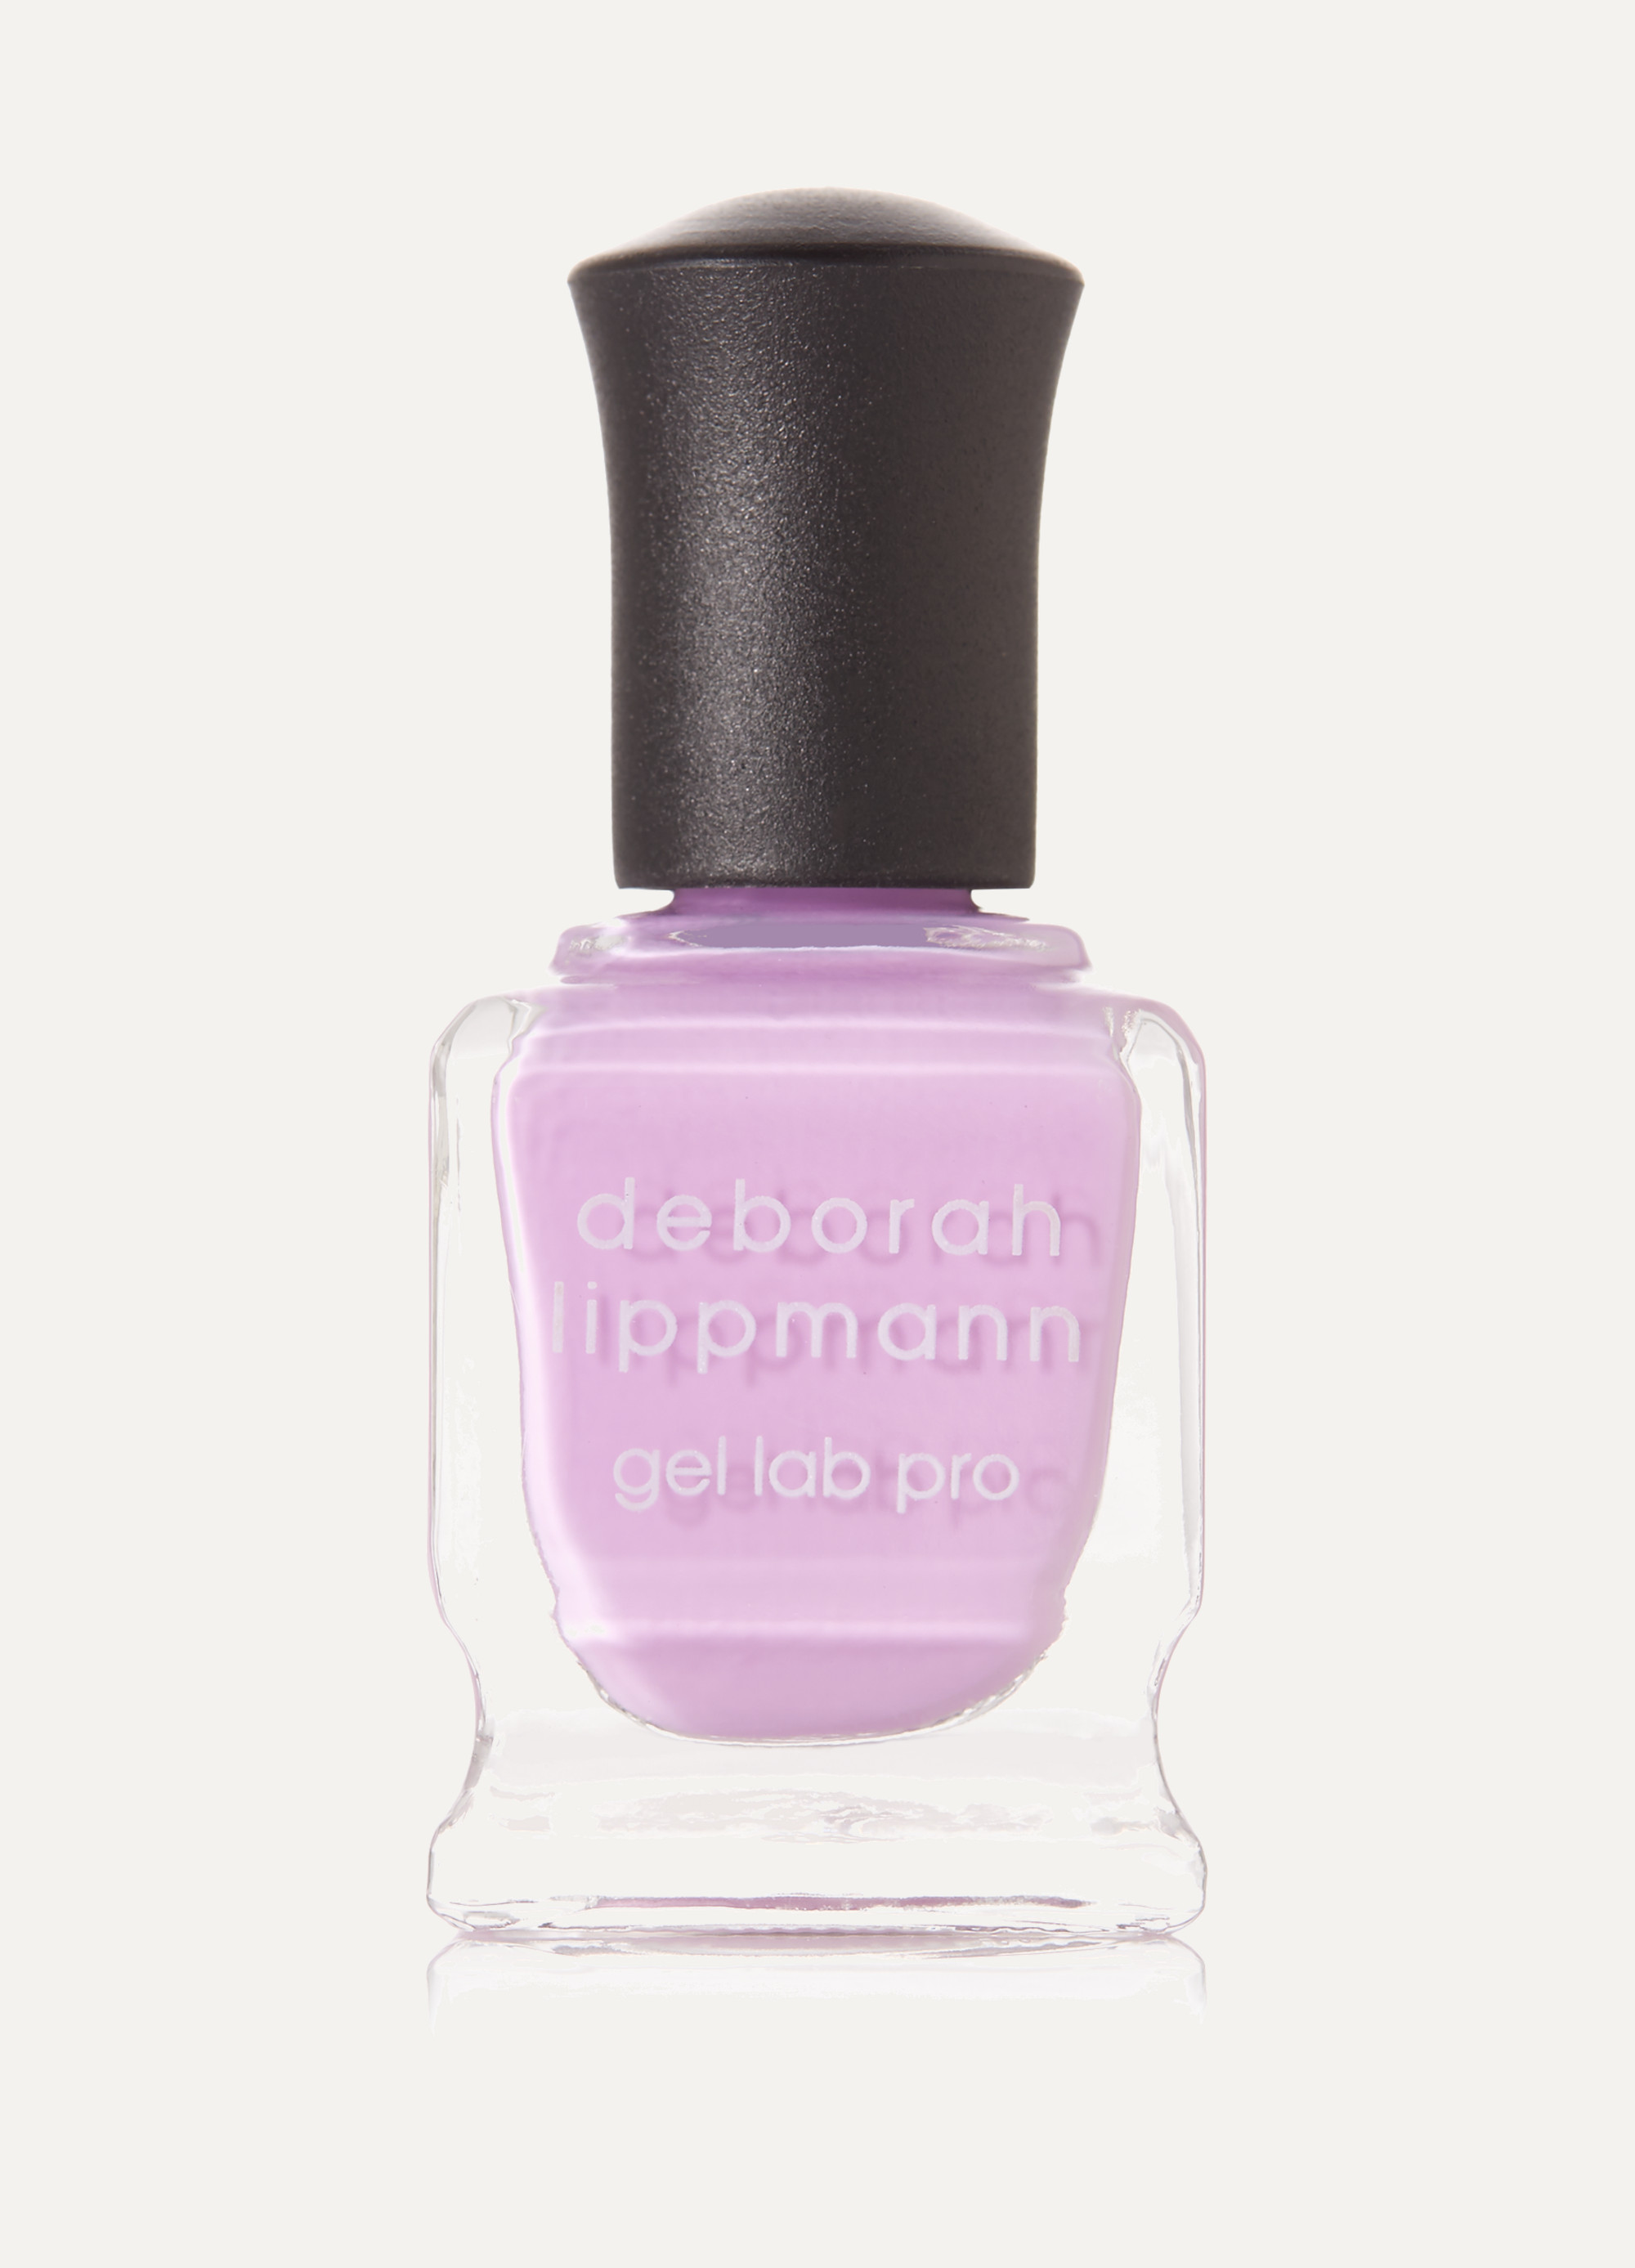 Deborah Lippmann Gel Lab Pro Nail Polish - The Pleasure Principle